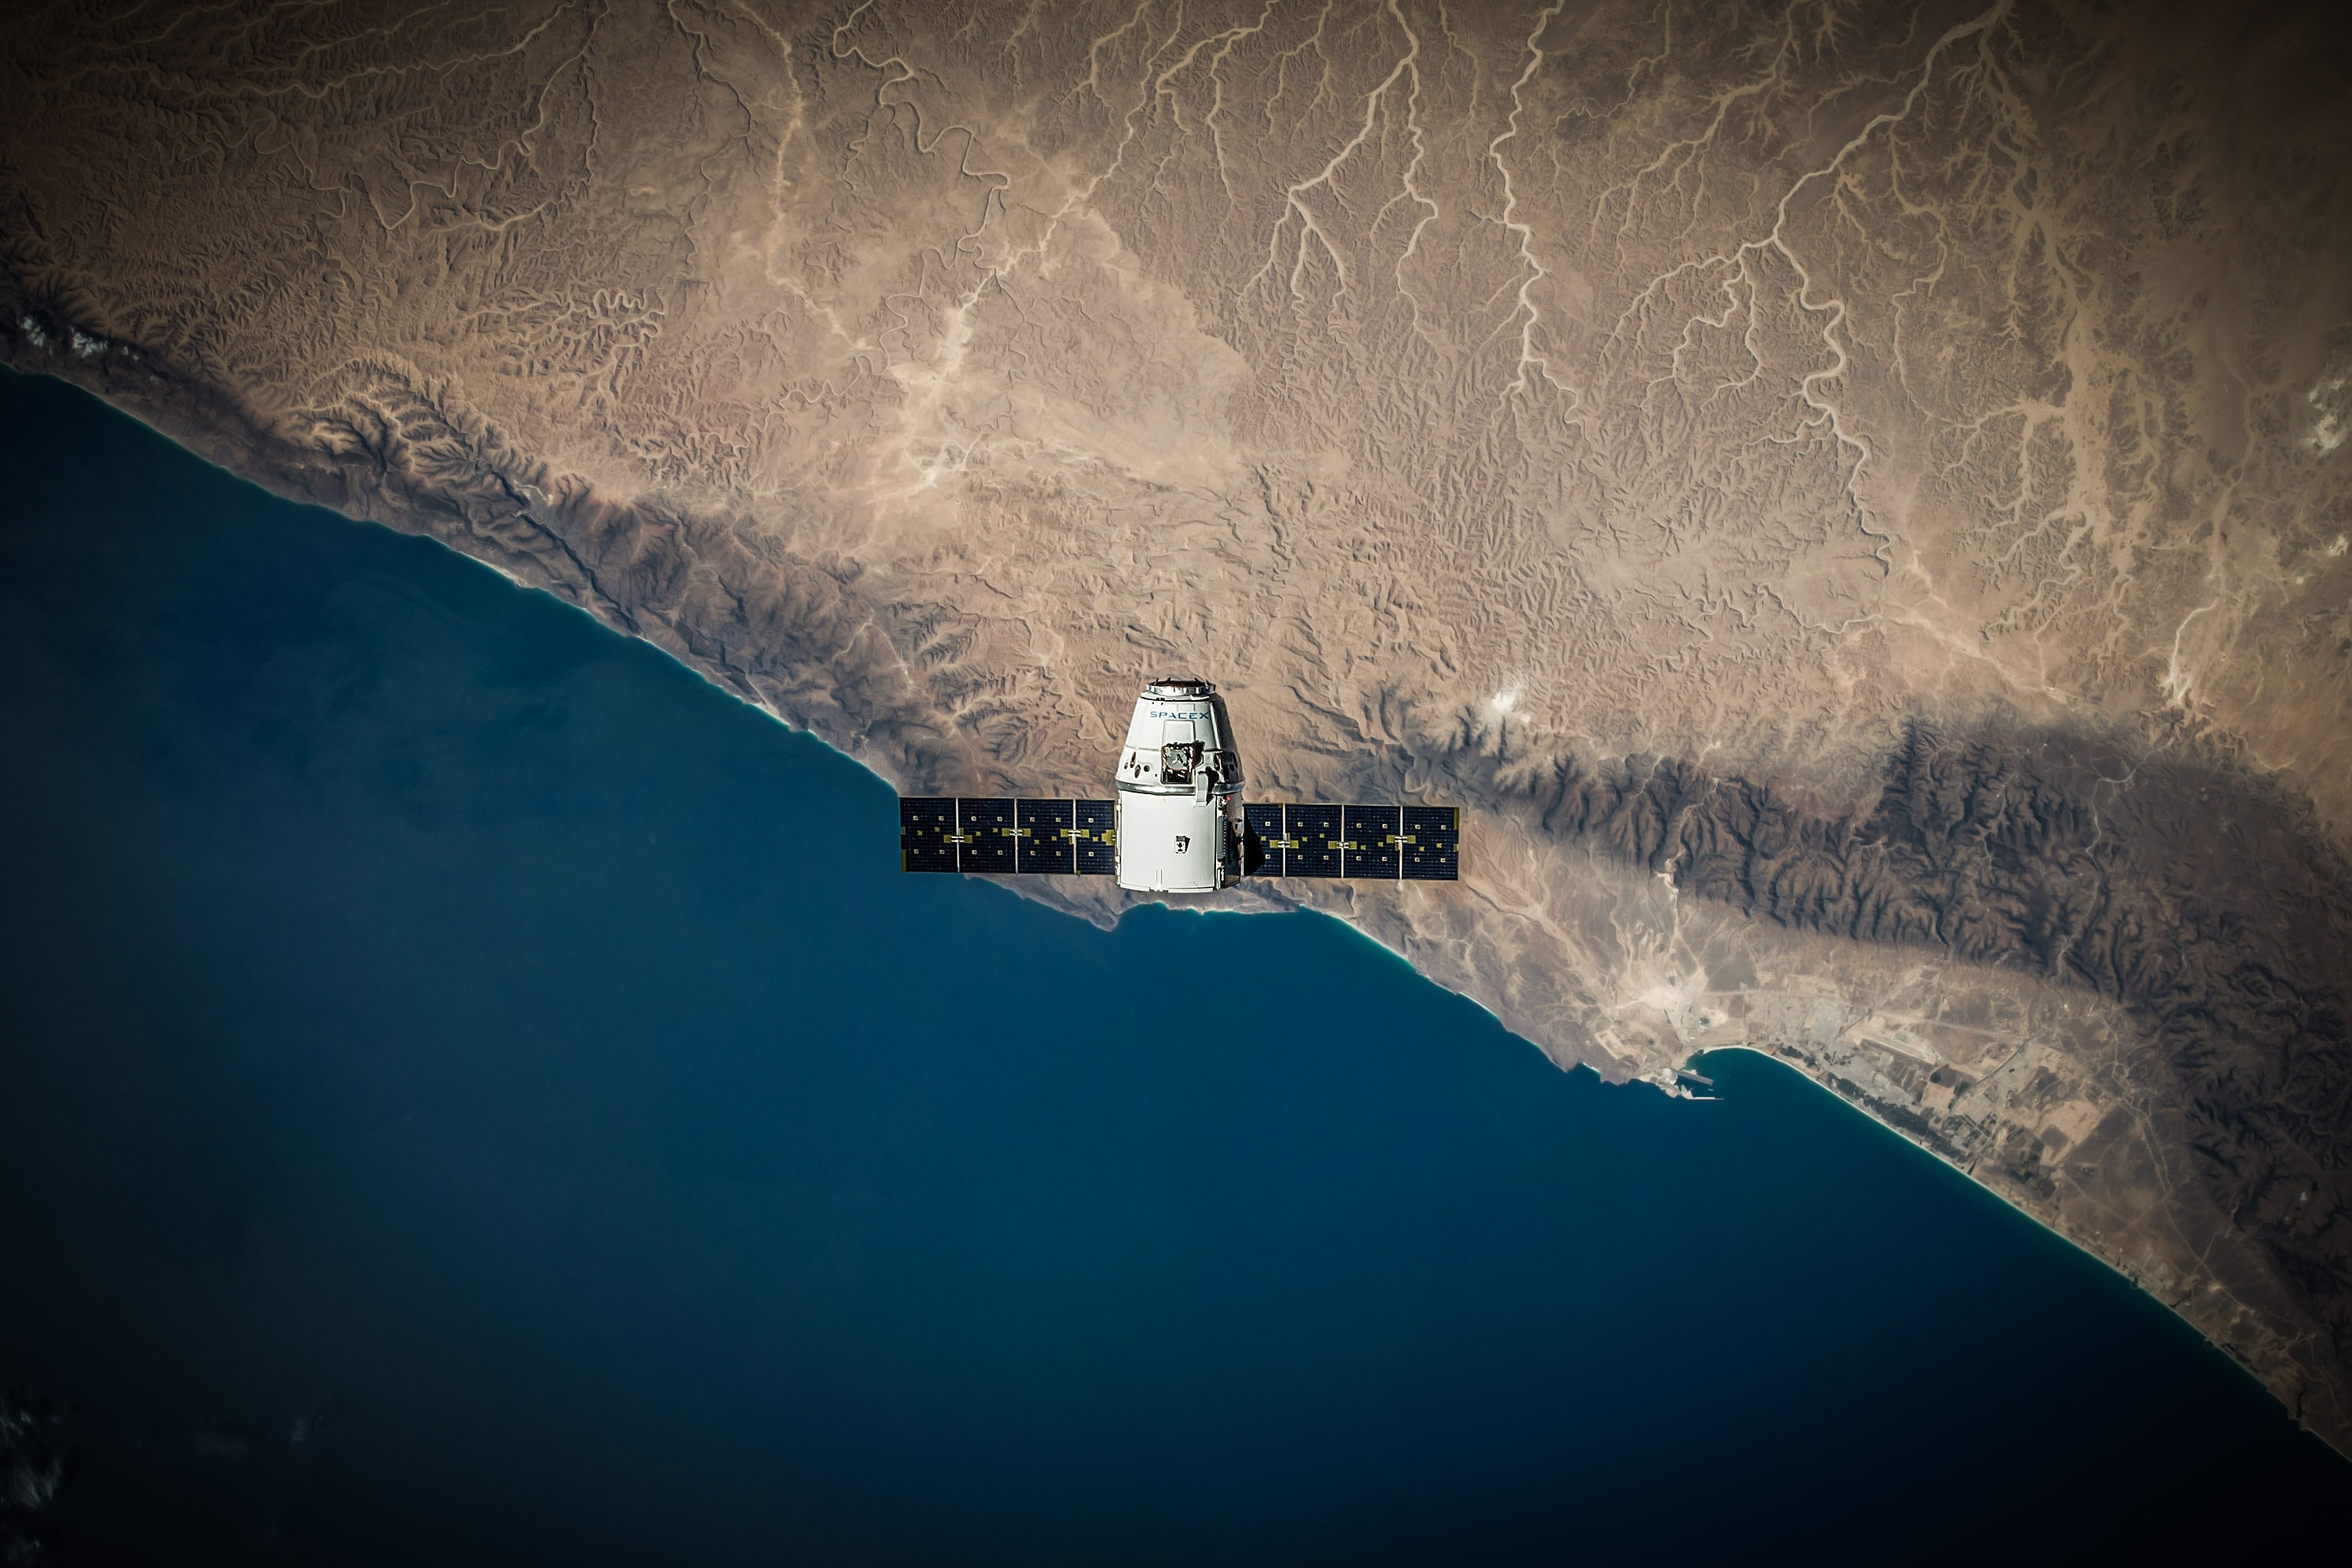 spacex-VBNb52J8Trk-unsplash